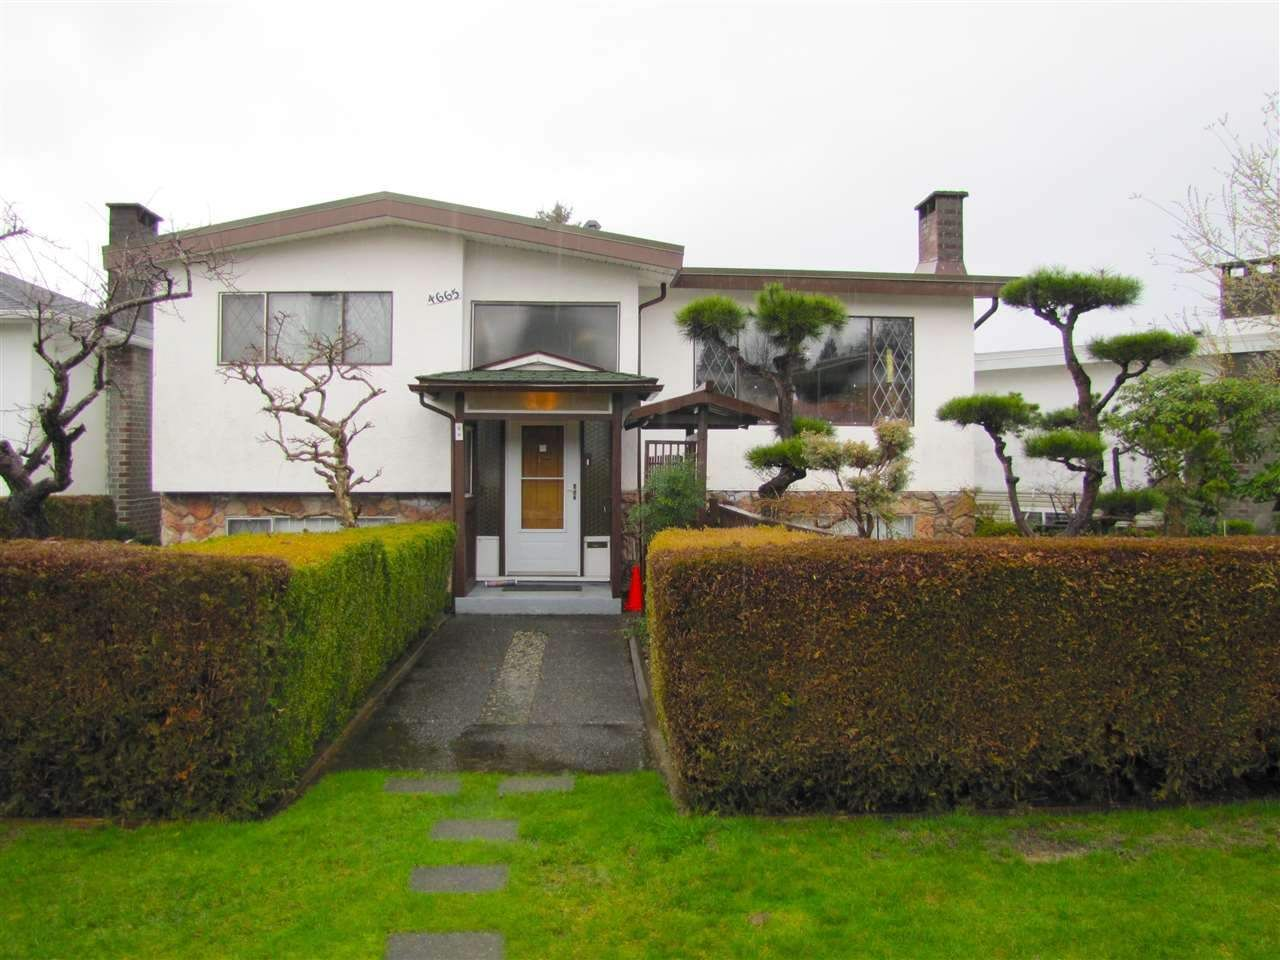 Main Photo: 4665 BALDWIN Street in Vancouver: Victoria VE House for sale (Vancouver East)  : MLS®# R2440227